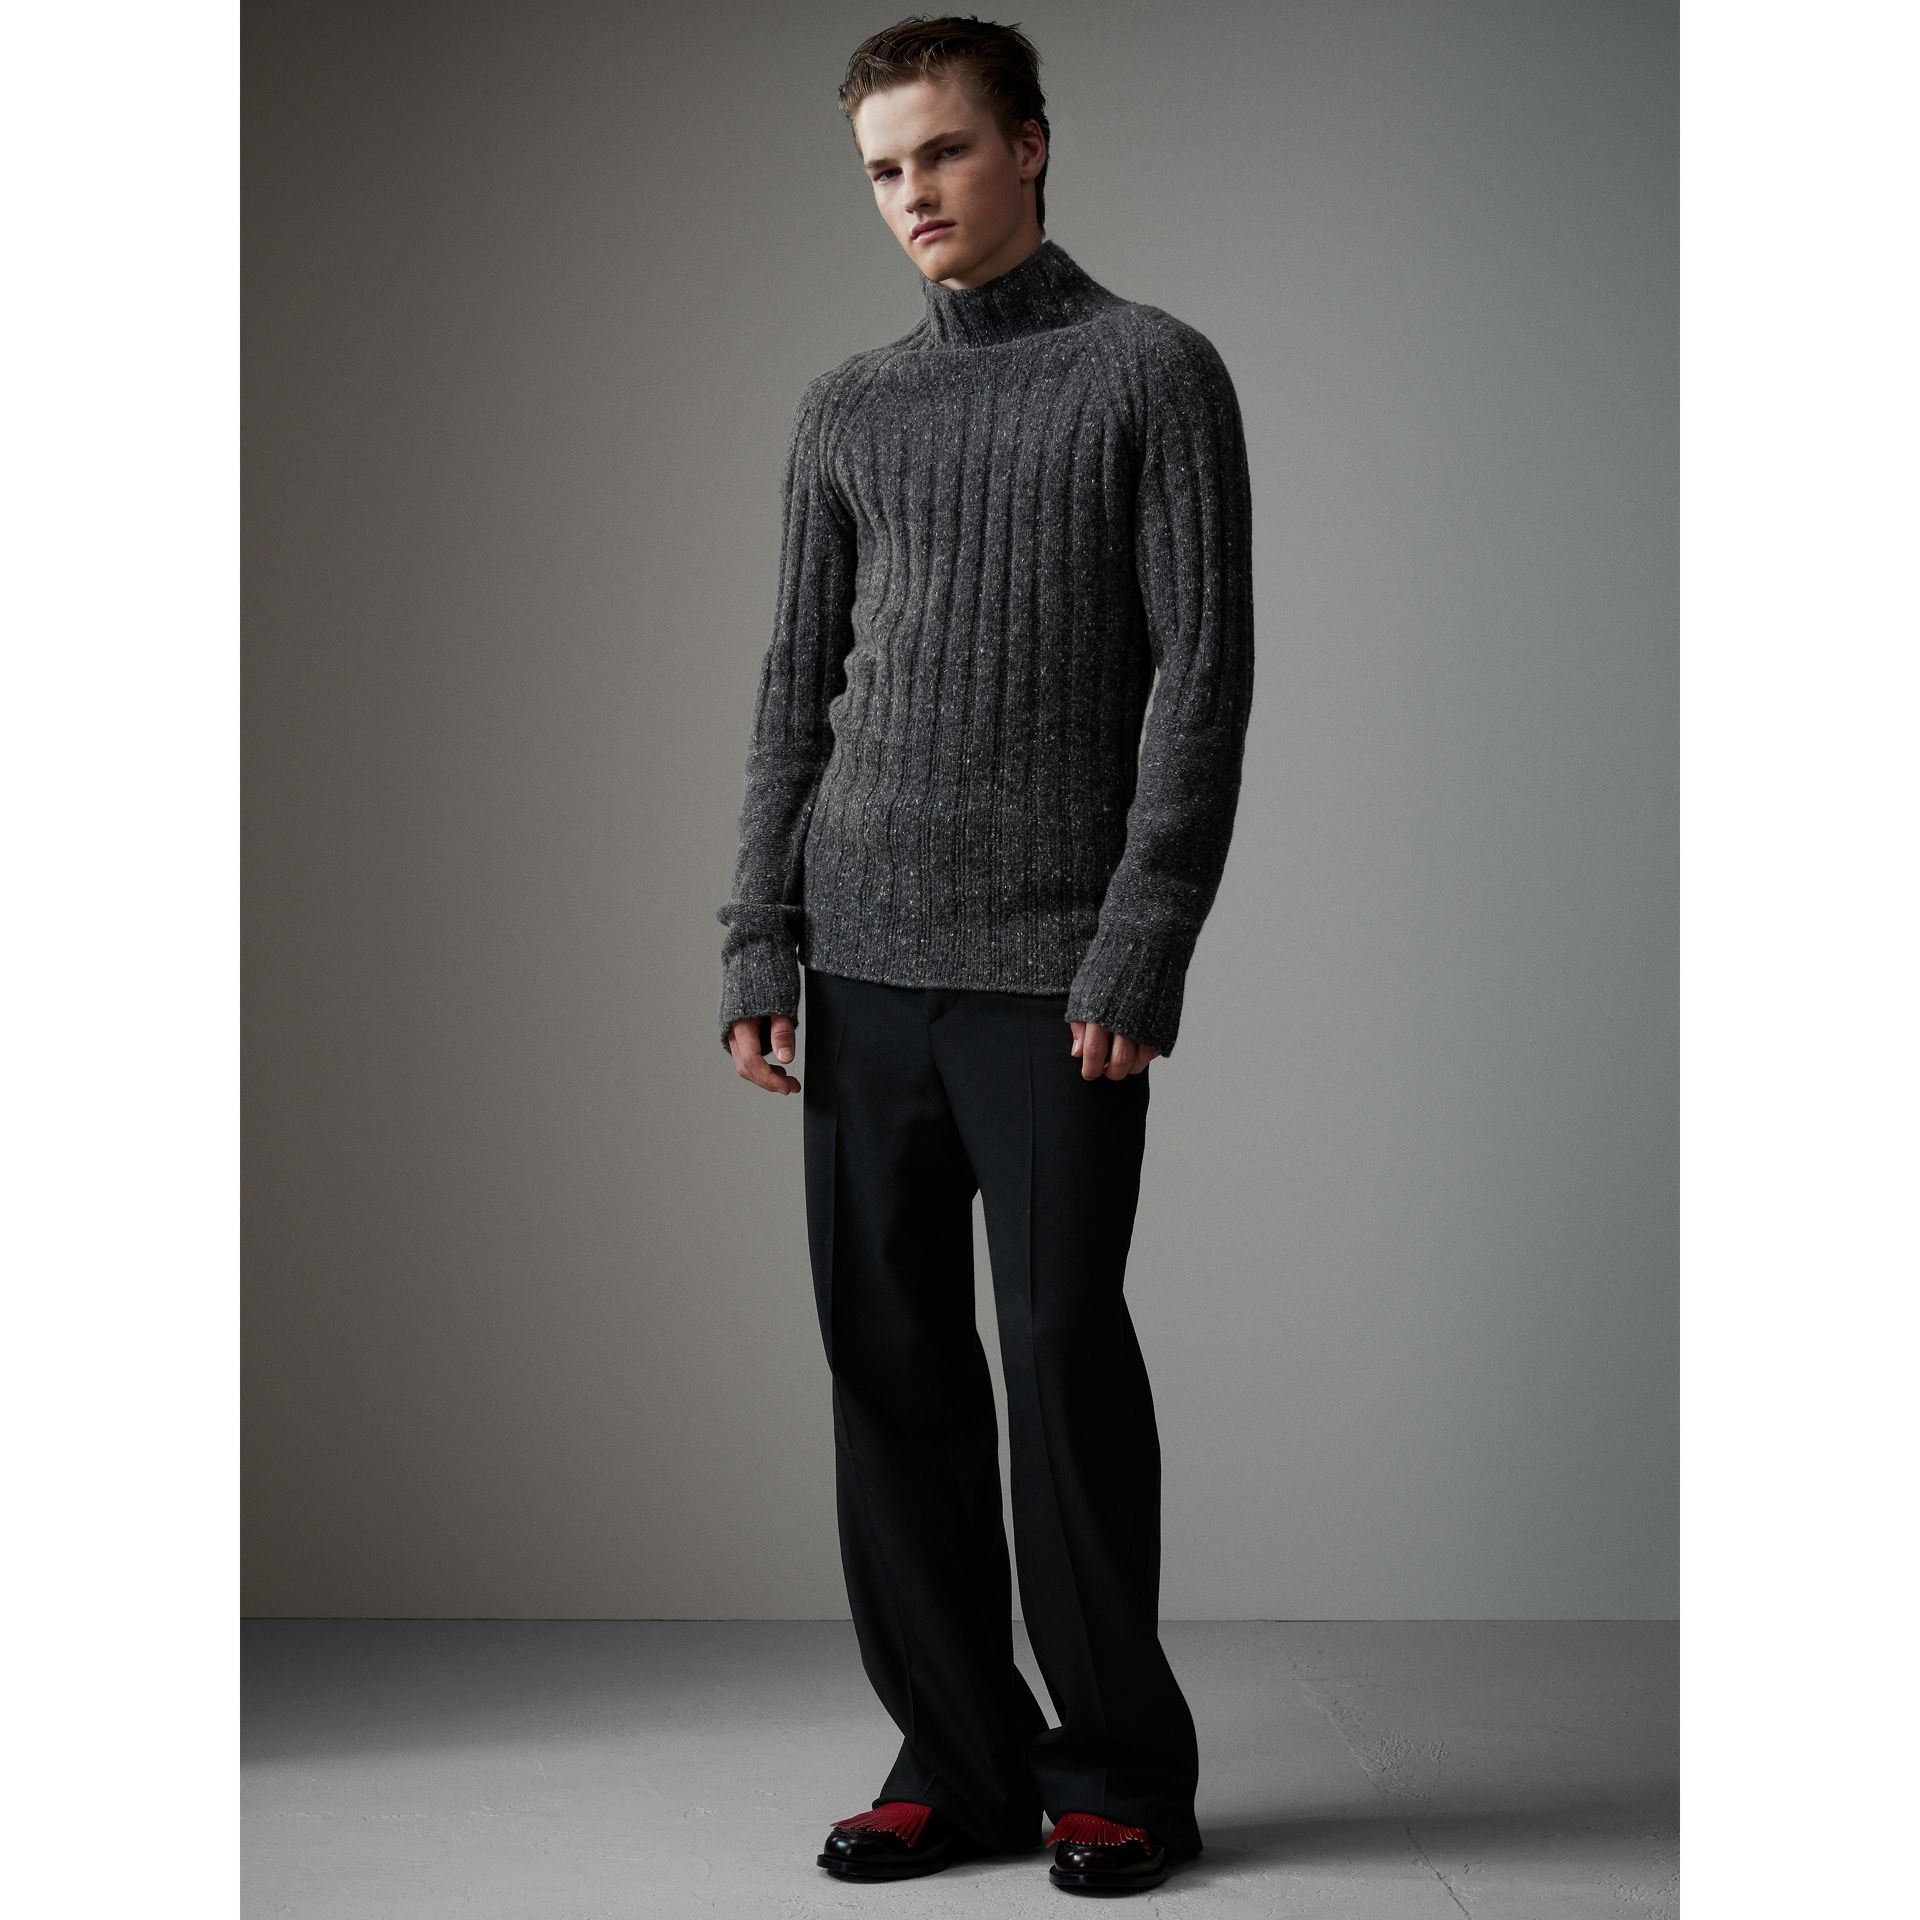 Rib Knit Wool Cashmere Turtleneck Sweater in Charcoal - Men | Burberry - gallery image 1